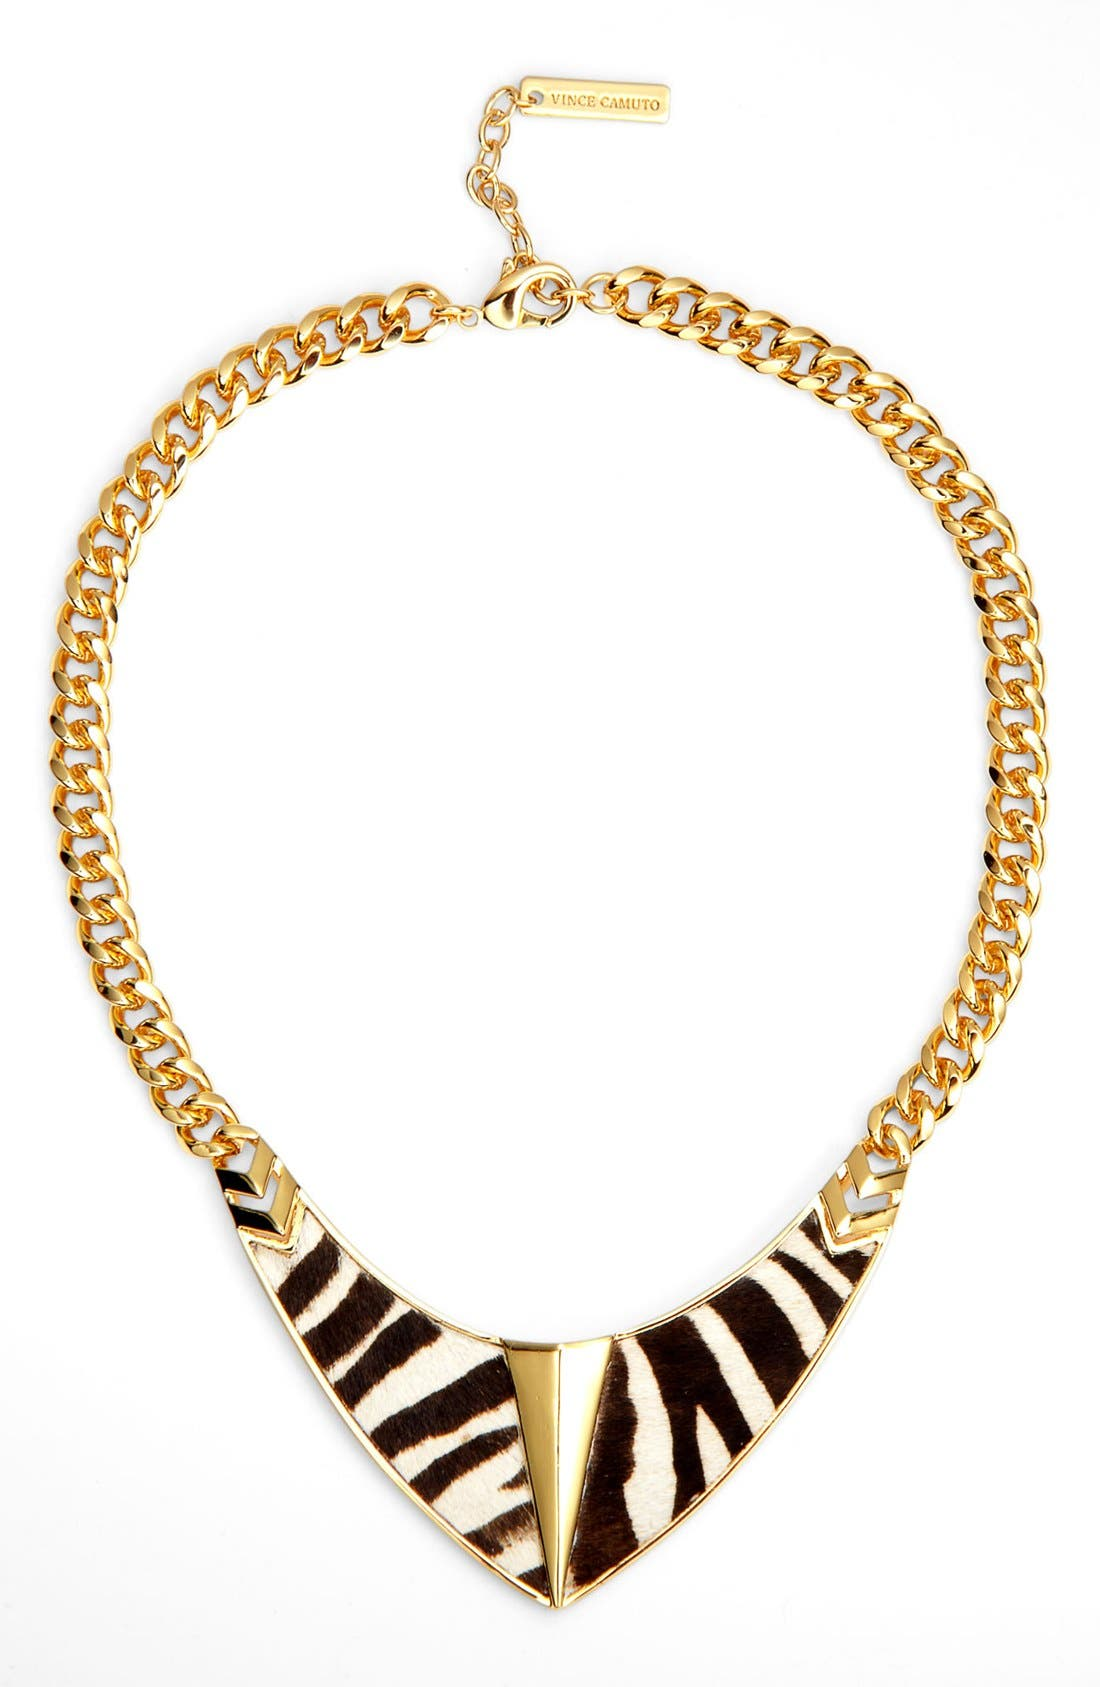 Alternate Image 1 Selected - Vince Camuto 'Call of the Wild' Bib Necklace (Nordstrom Exclusive)